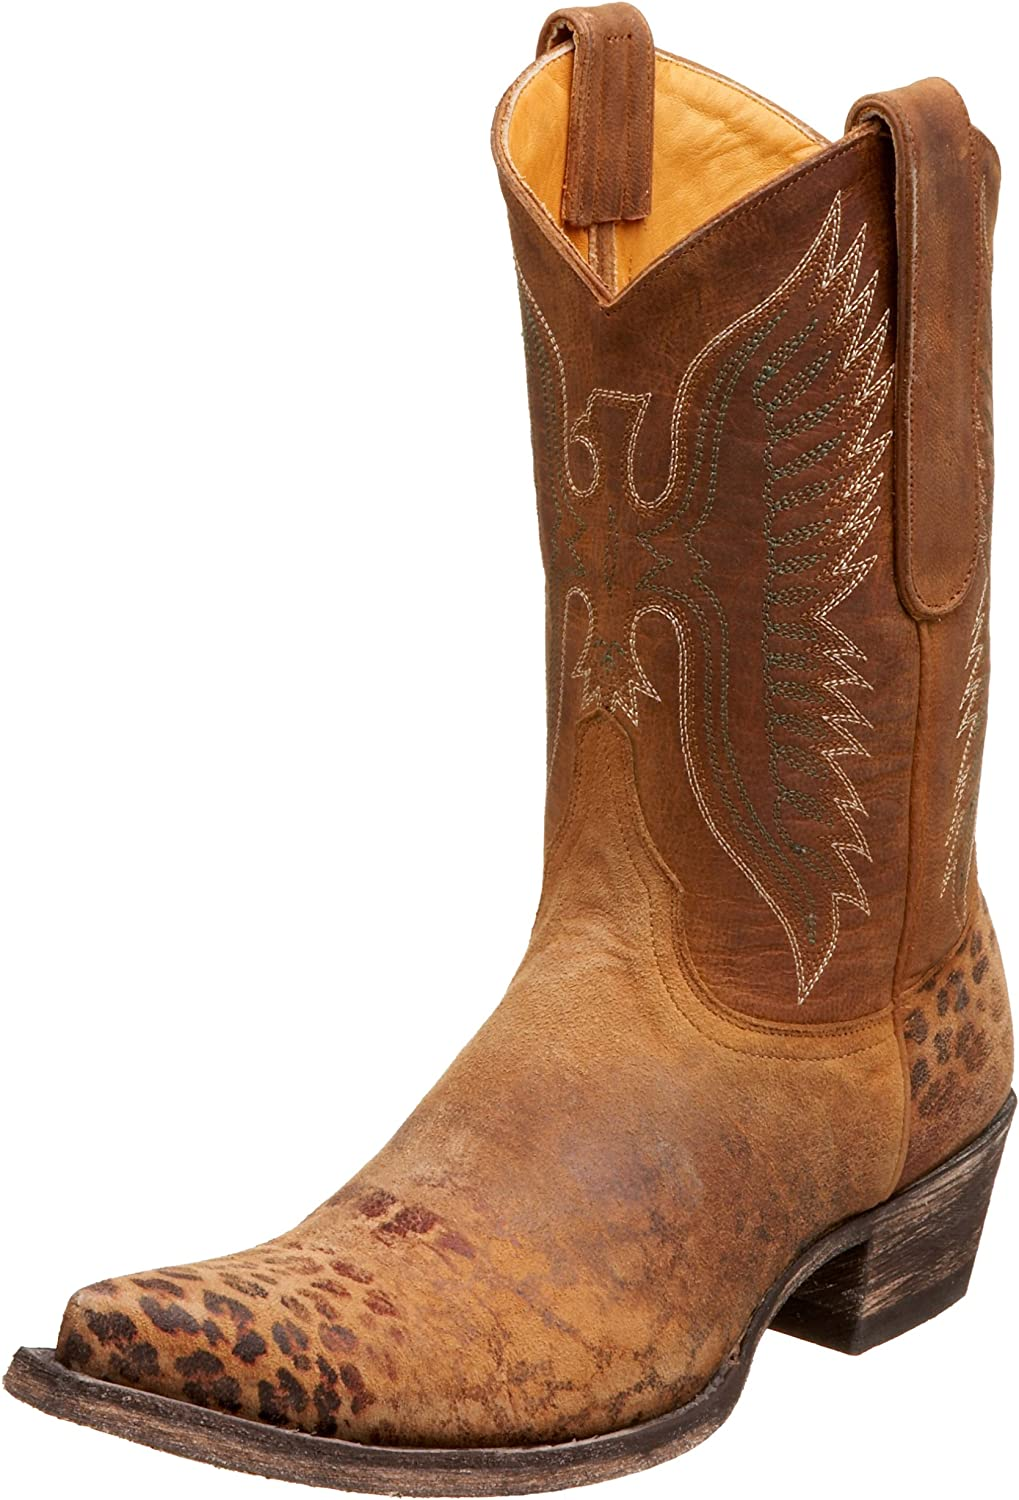 Old Gringo Women's L172-16 Daily bargain sale Cowboy Boot Eagle Max 66% OFF Stitched